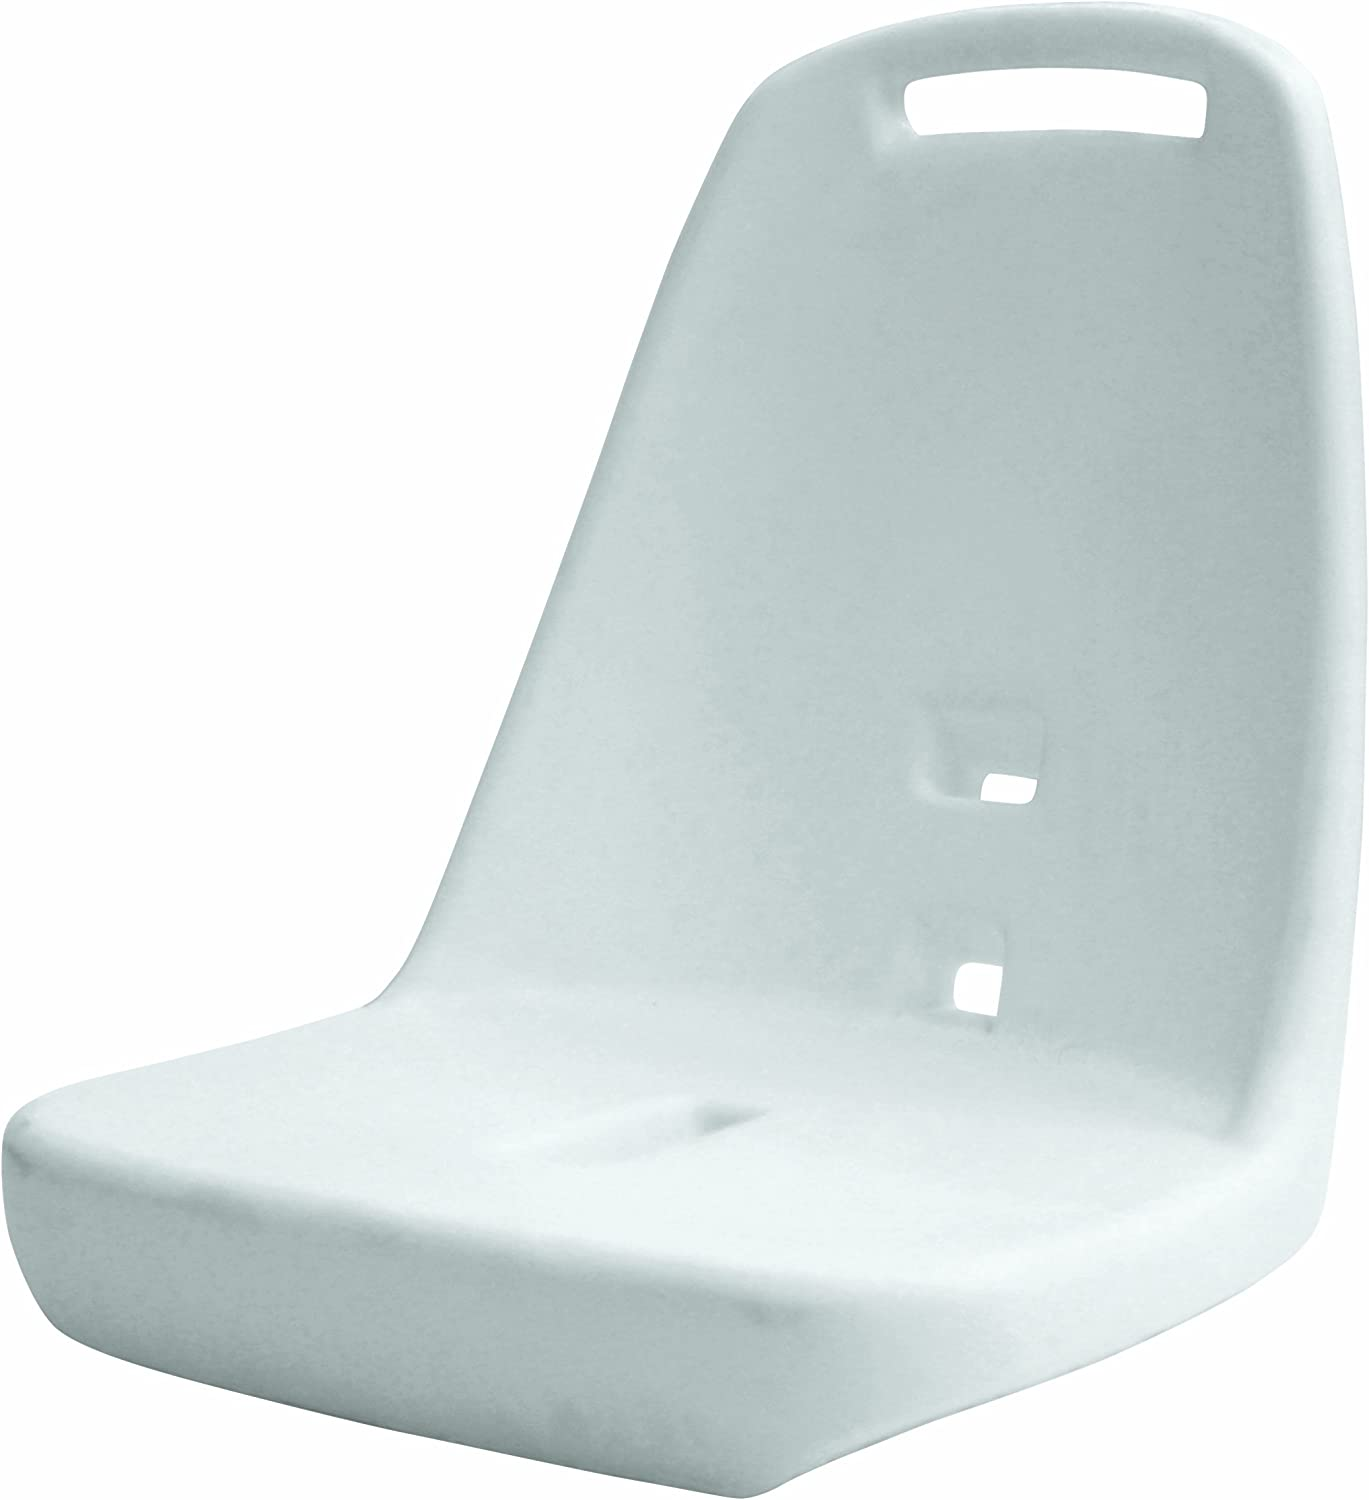 Wise 8WD013-1-710 Standard Pilot Chair Shell Only